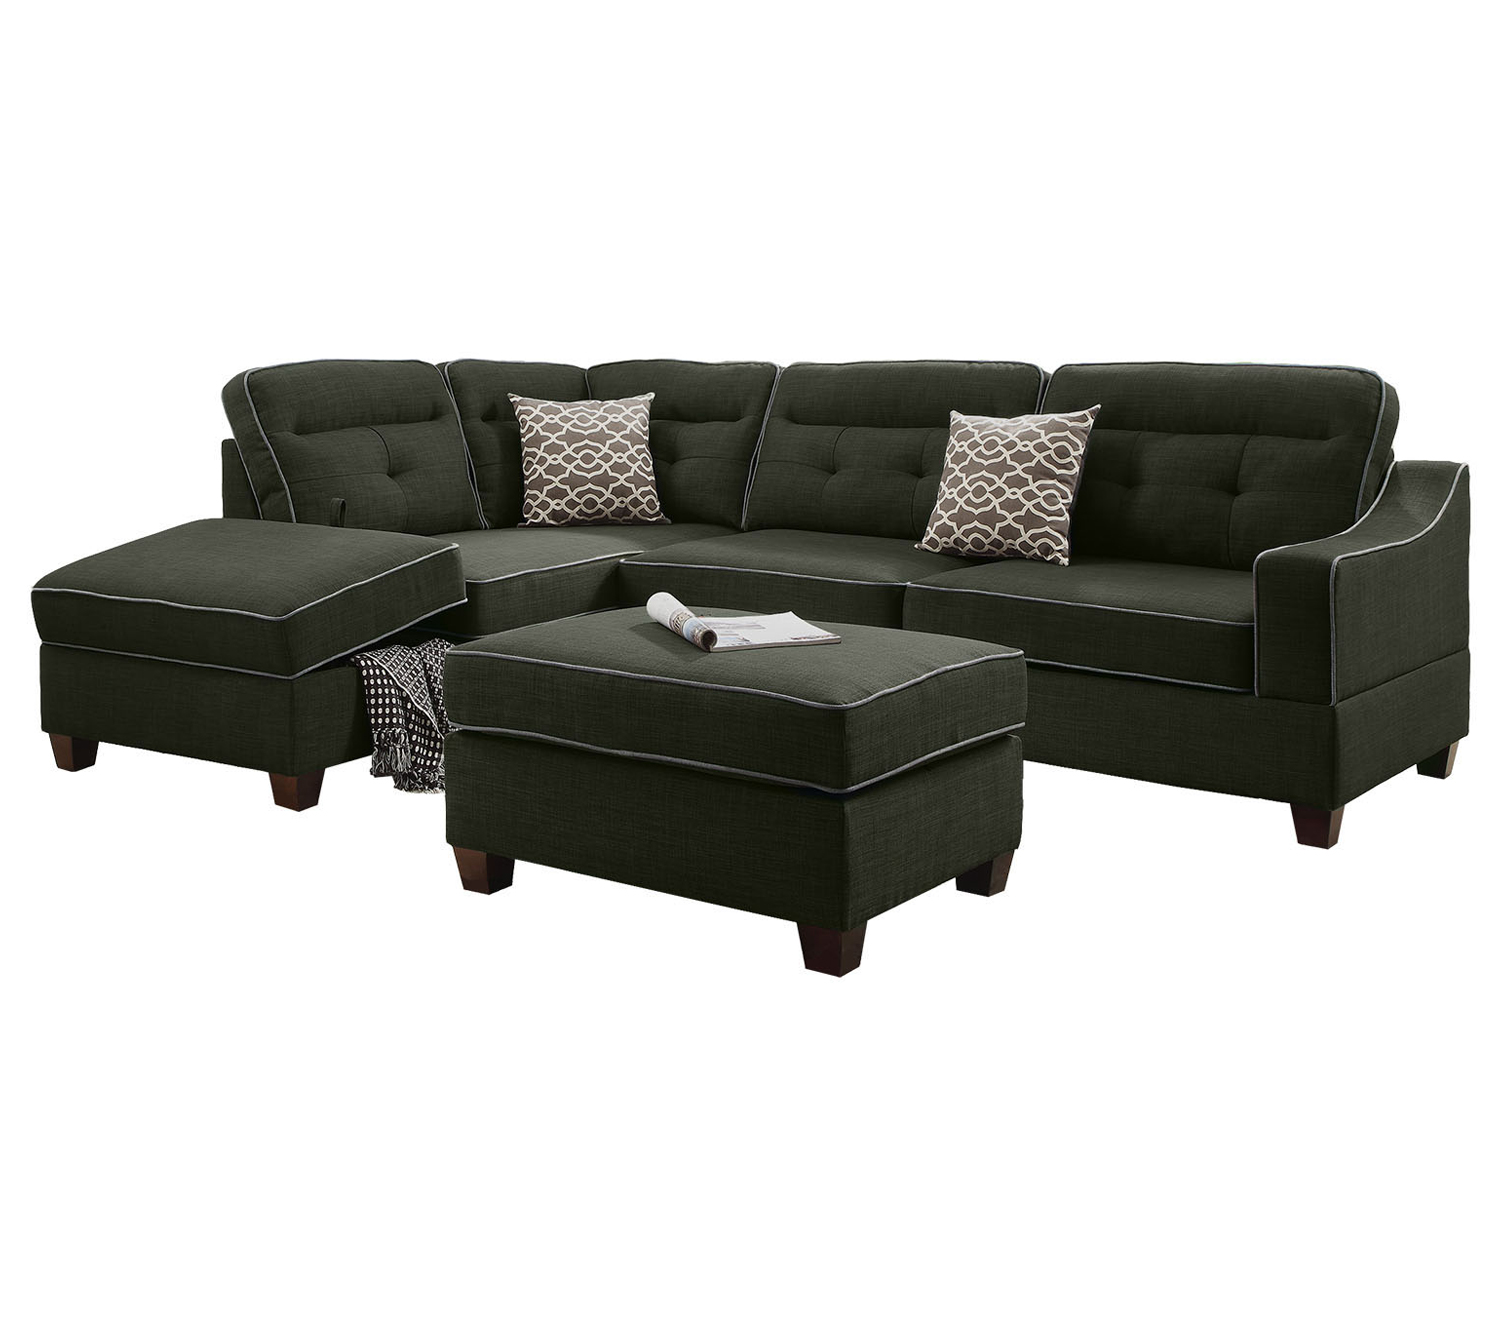 Bobkona Kathie Dorris fabric Left or Right hand Chaise Sectional Set with Storage Compartment and Ottoman in Ash Black. by Poundex